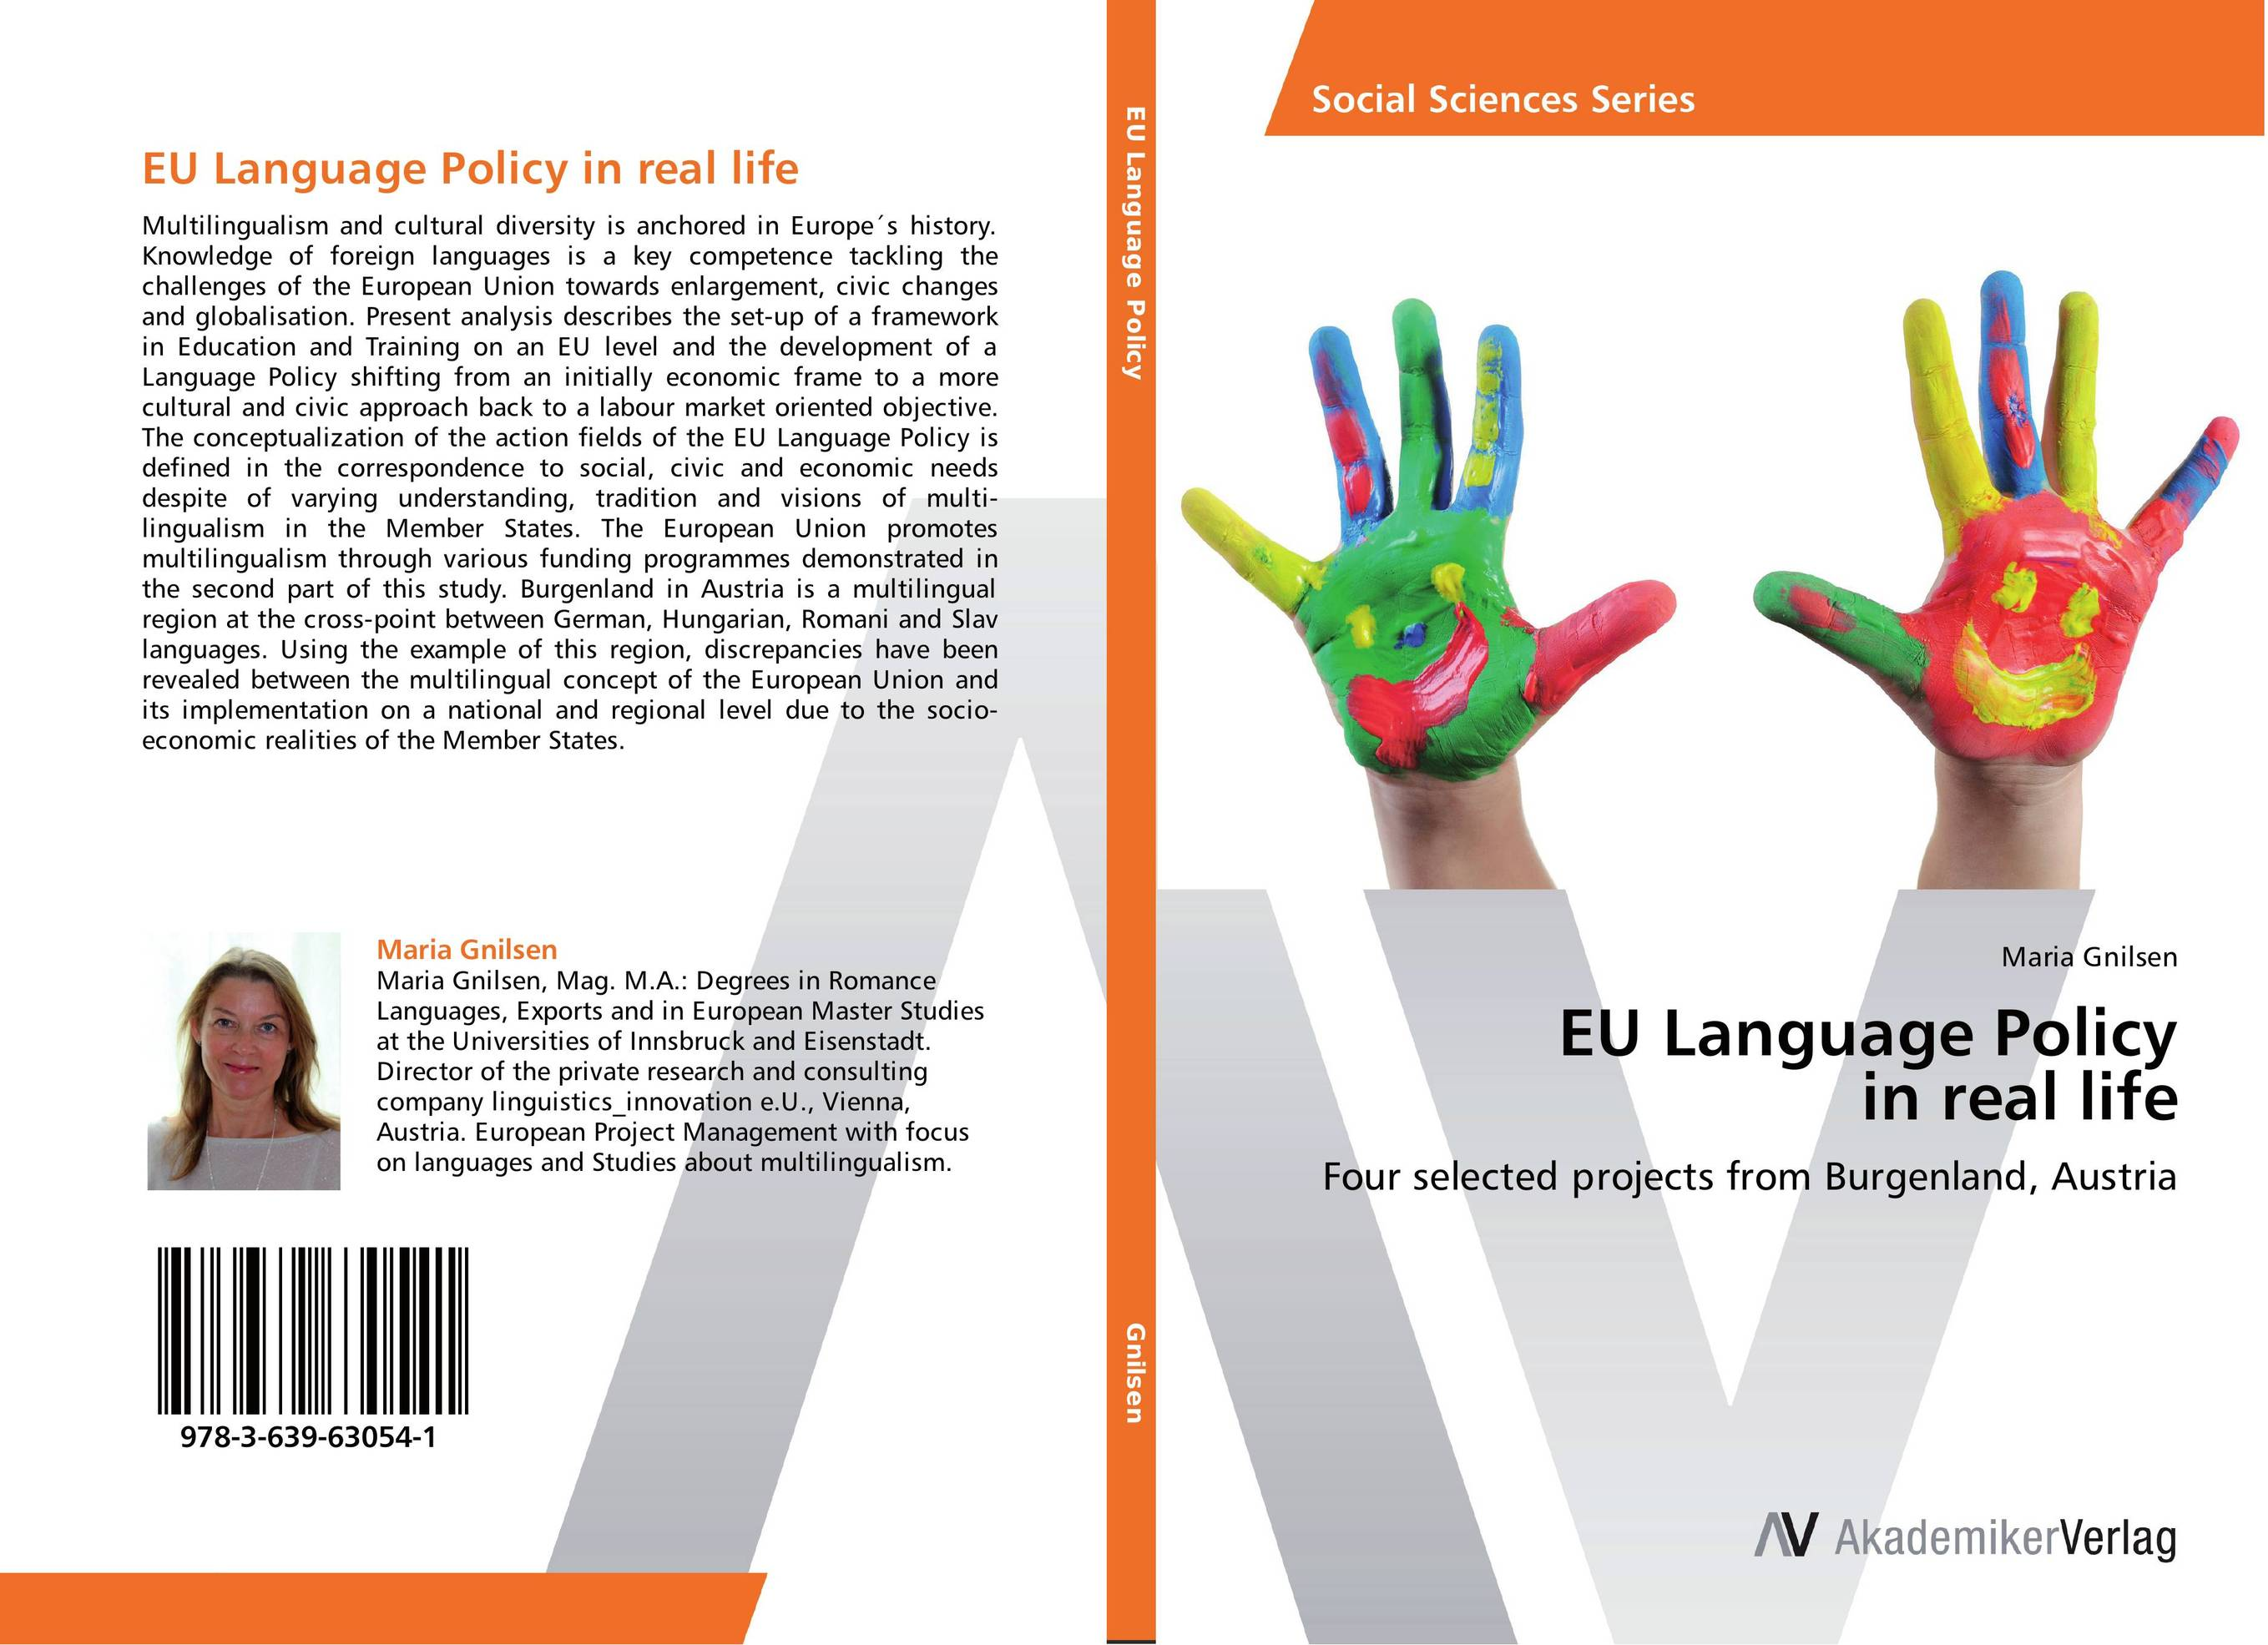 EU Language Policy in real life the states and public higher education policy